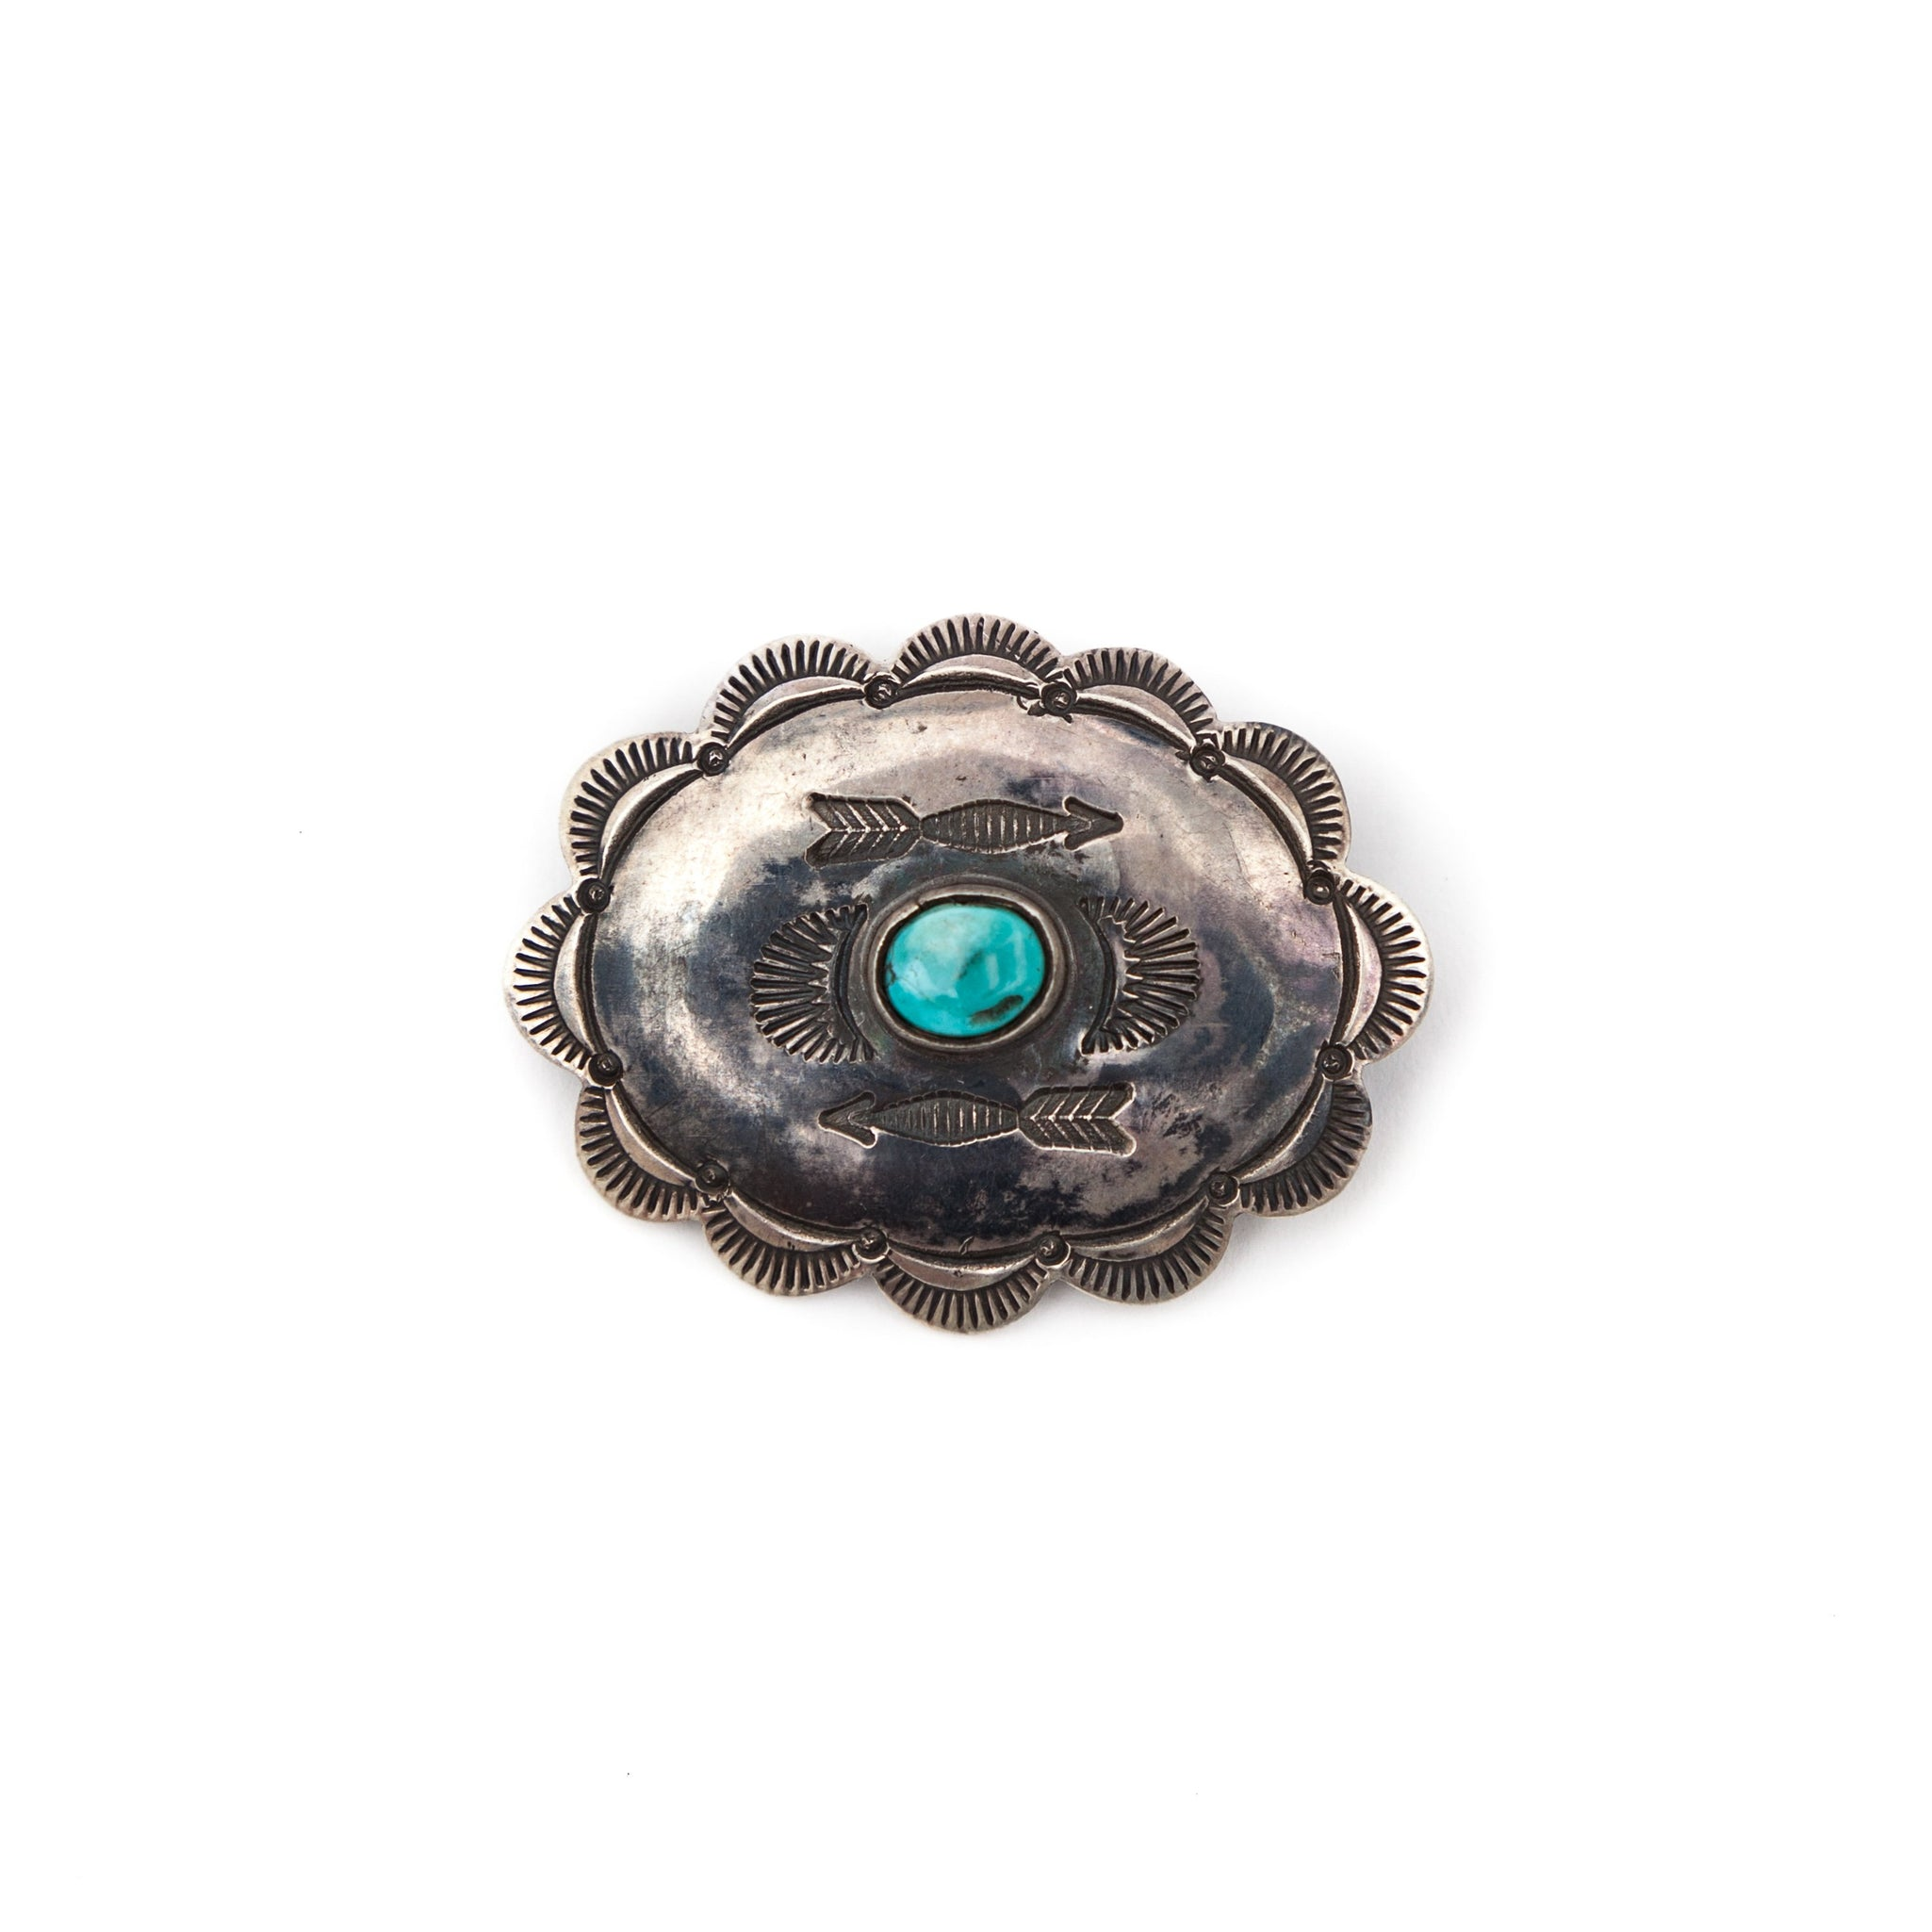 Silver Brooch & Turquoise Stone #2